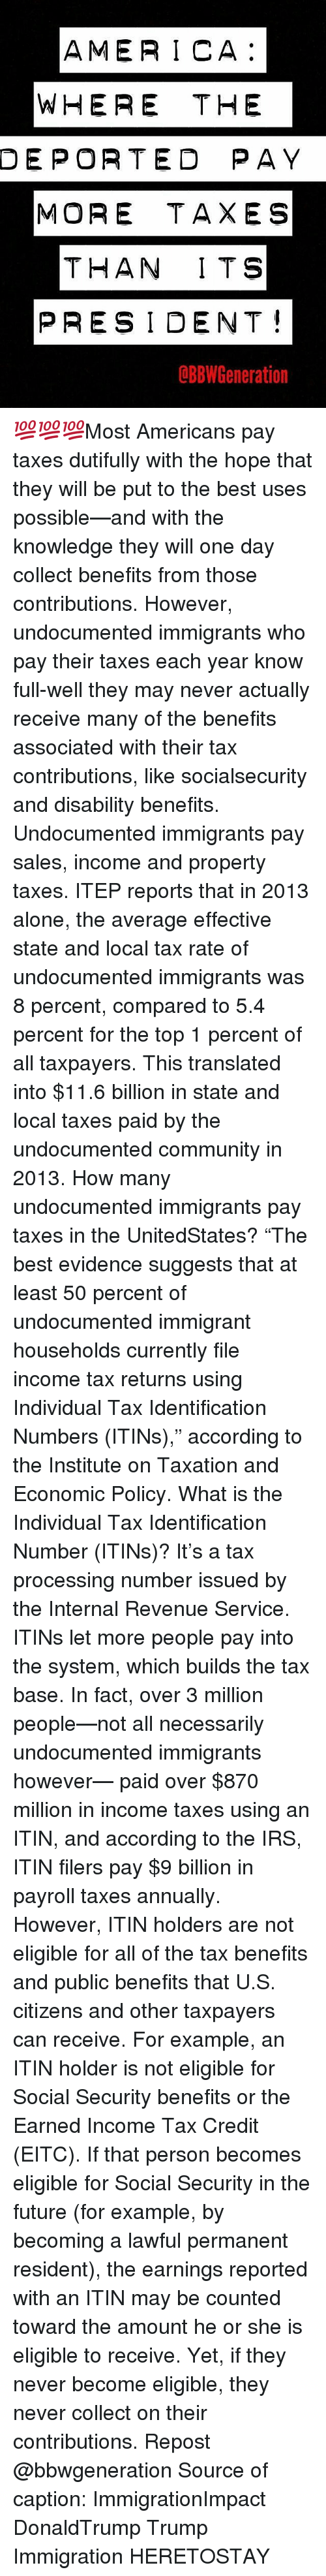 "Averagers: AMERICA  WHERE THE  DEPORTED PAY  MORE TAXES  THAN ITS  PRESIDENT  dBBW Generation 💯💯💯Most Americans pay taxes dutifully with the hope that they will be put to the best uses possible—and with the knowledge they will one day collect benefits from those contributions. However, undocumented immigrants who pay their taxes each year know full-well they may never actually receive many of the benefits associated with their tax contributions, like socialsecurity and disability benefits. Undocumented immigrants pay sales, income and property taxes. ITEP reports that in 2013 alone, the average effective state and local tax rate of undocumented immigrants was 8 percent, compared to 5.4 percent for the top 1 percent of all taxpayers. This translated into $11.6 billion in state and local taxes paid by the undocumented community in 2013. How many undocumented immigrants pay taxes in the UnitedStates? ""The best evidence suggests that at least 50 percent of undocumented immigrant households currently file income tax returns using Individual Tax Identification Numbers (ITINs),"" according to the Institute on Taxation and Economic Policy. What is the Individual Tax Identification Number (ITINs)? It's a tax processing number issued by the Internal Revenue Service. ITINs let more people pay into the system, which builds the tax base. In fact, over 3 million people—not all necessarily undocumented immigrants however— paid over $870 million in income taxes using an ITIN, and according to the IRS, ITIN filers pay $9 billion in payroll taxes annually. However, ITIN holders are not eligible for all of the tax benefits and public benefits that U.S. citizens and other taxpayers can receive. For example, an ITIN holder is not eligible for Social Security benefits or the Earned Income Tax Credit (EITC). If that person becomes eligible for Social Security in the future (for example, by becoming a lawful permanent resident), the earnings reported with an ITIN may be counted toward the amount he or she is eligible to receive. Yet, if they never become eligible, they never collect on their contributions. Repost @bbwgeneration Source of caption: ImmigrationImpact DonaldTrump Trump Immigration HERETOSTAY"